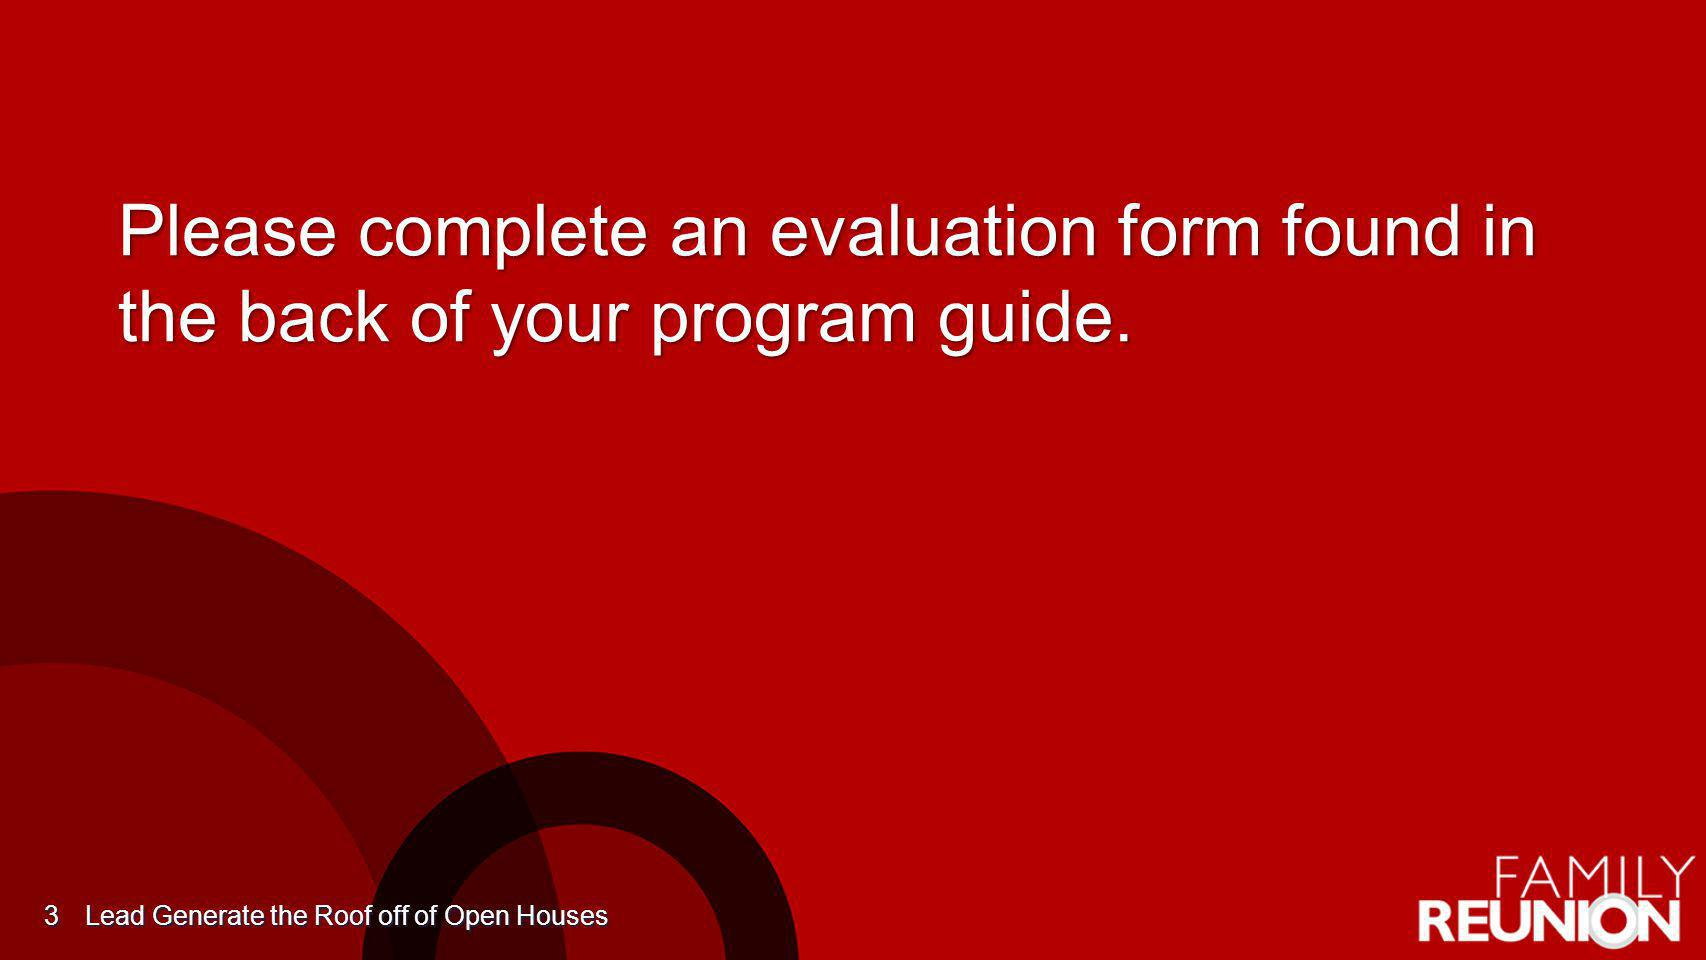 Please complete an evaluation form found in the back of your program guide. Lead Generate the Roof off of Open Houses 3